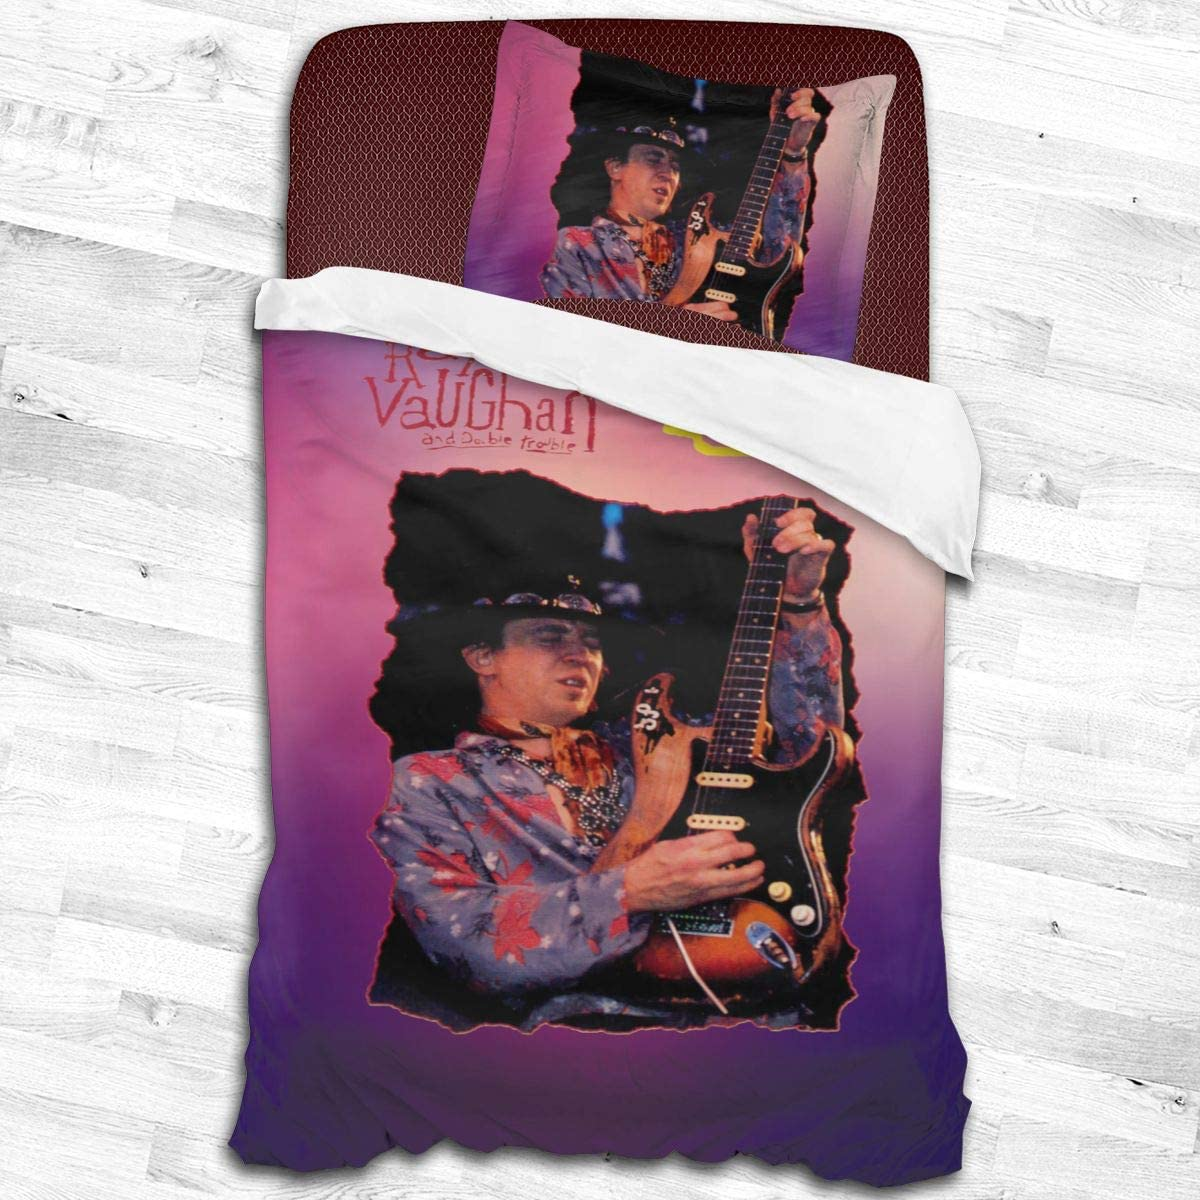 Qwtywqekeertyi Stevie Ray Vaughan Cotton Student Dormitory Quilt Cover Two-Piece Quilt Cover for Boys and Girls On Single Beds